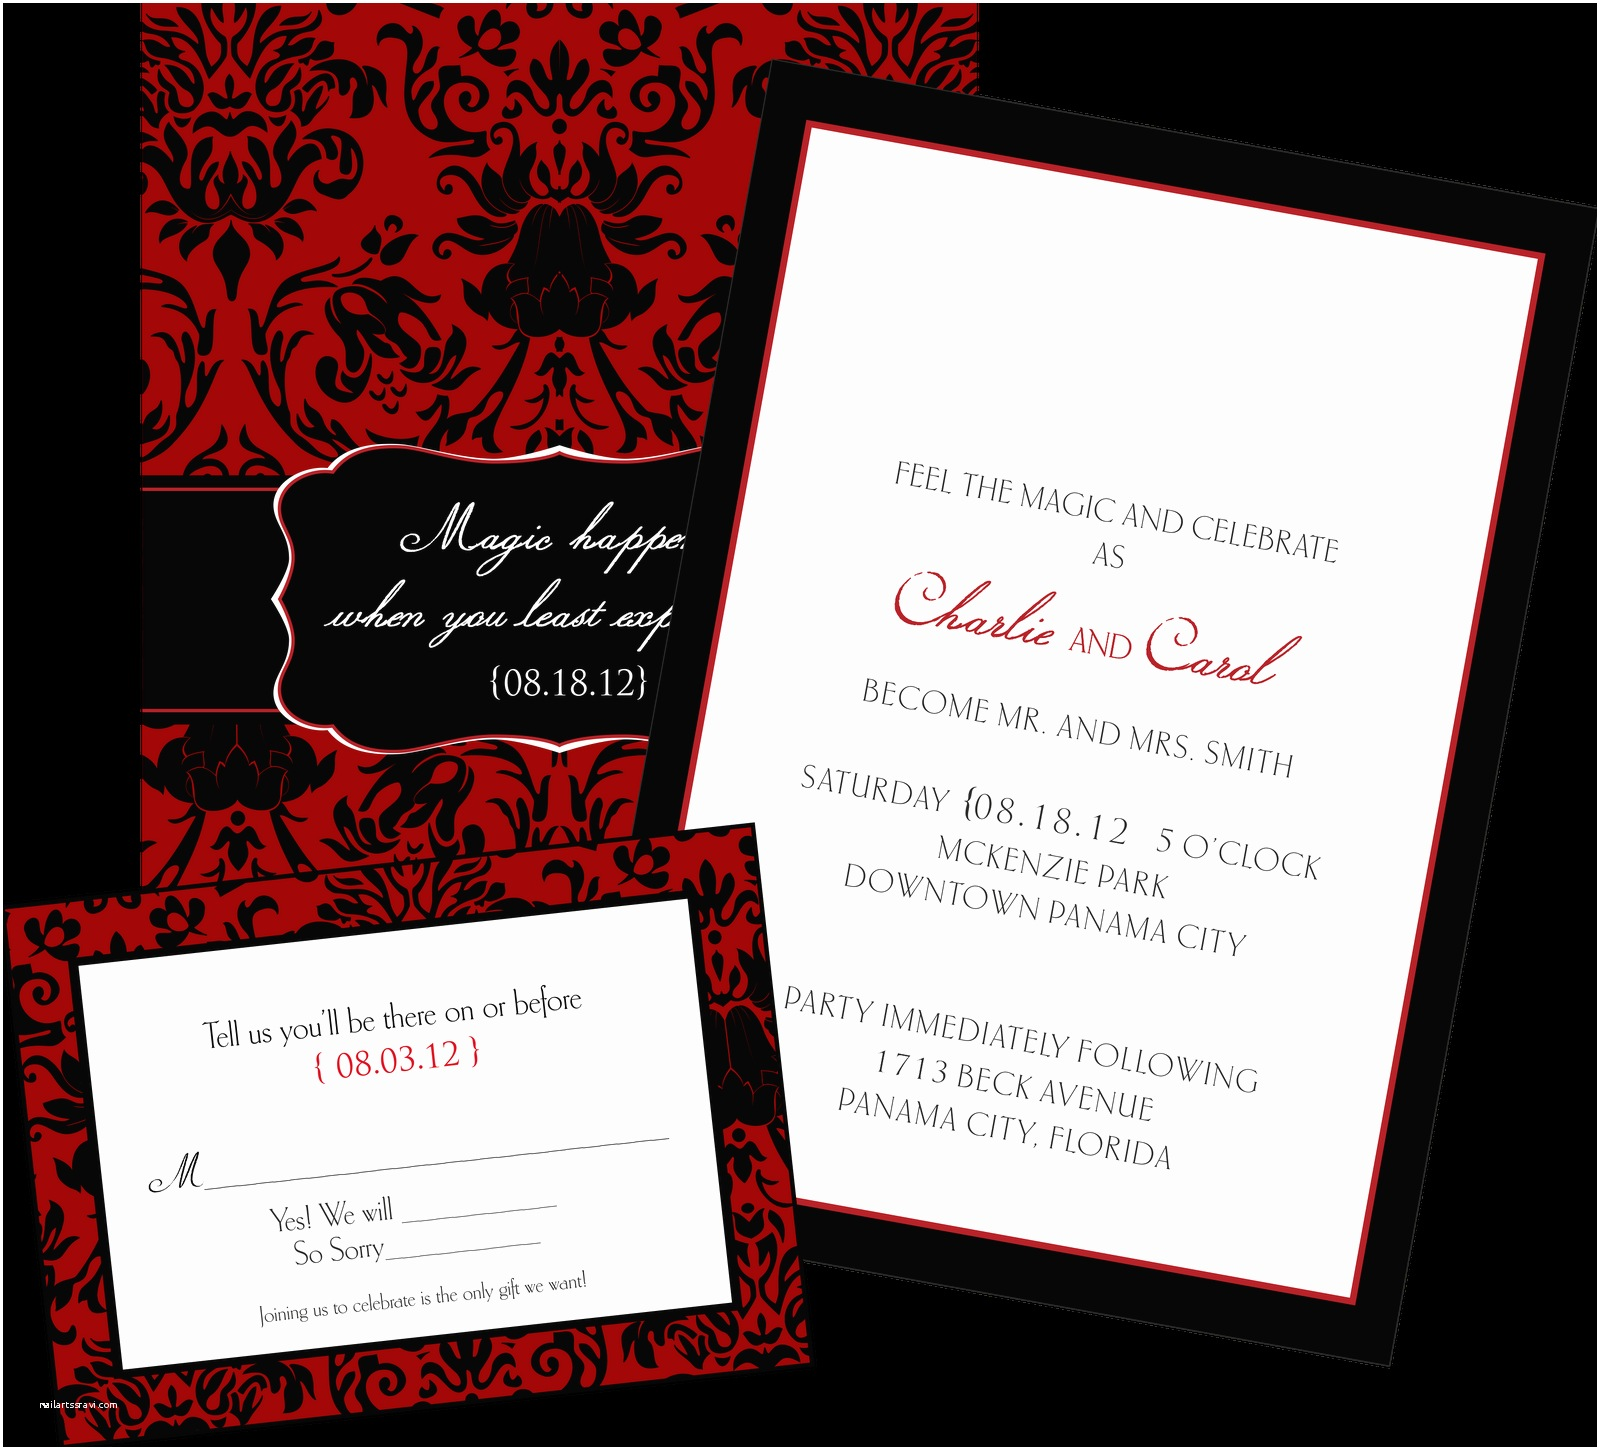 What to Include In Wedding Invitation 6 Things Not to for On Your Wedding Invitations Get